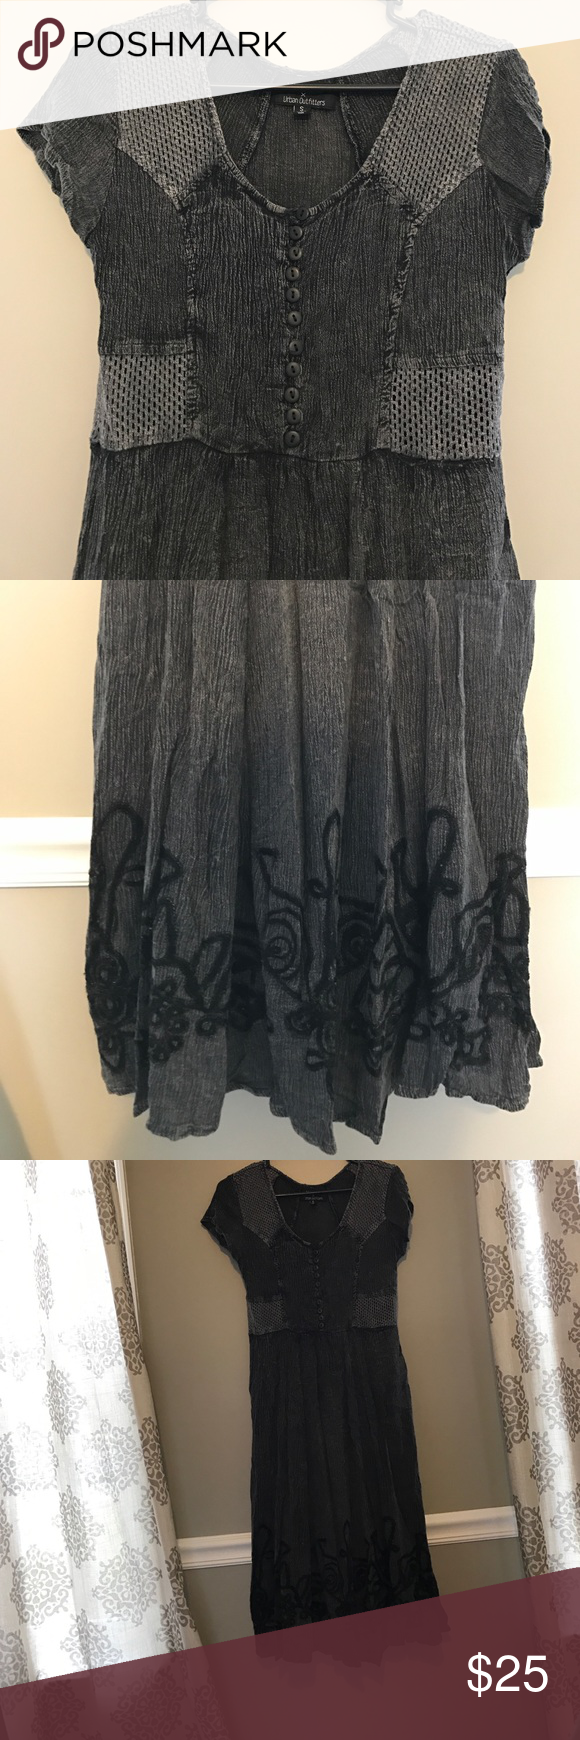 Urban Outfitters Gray Dress Free people inspired urban outfitters dress. Depending on how tall or short you are it will either be a midi or a maxi. Urban Outfitters Dresses Midi